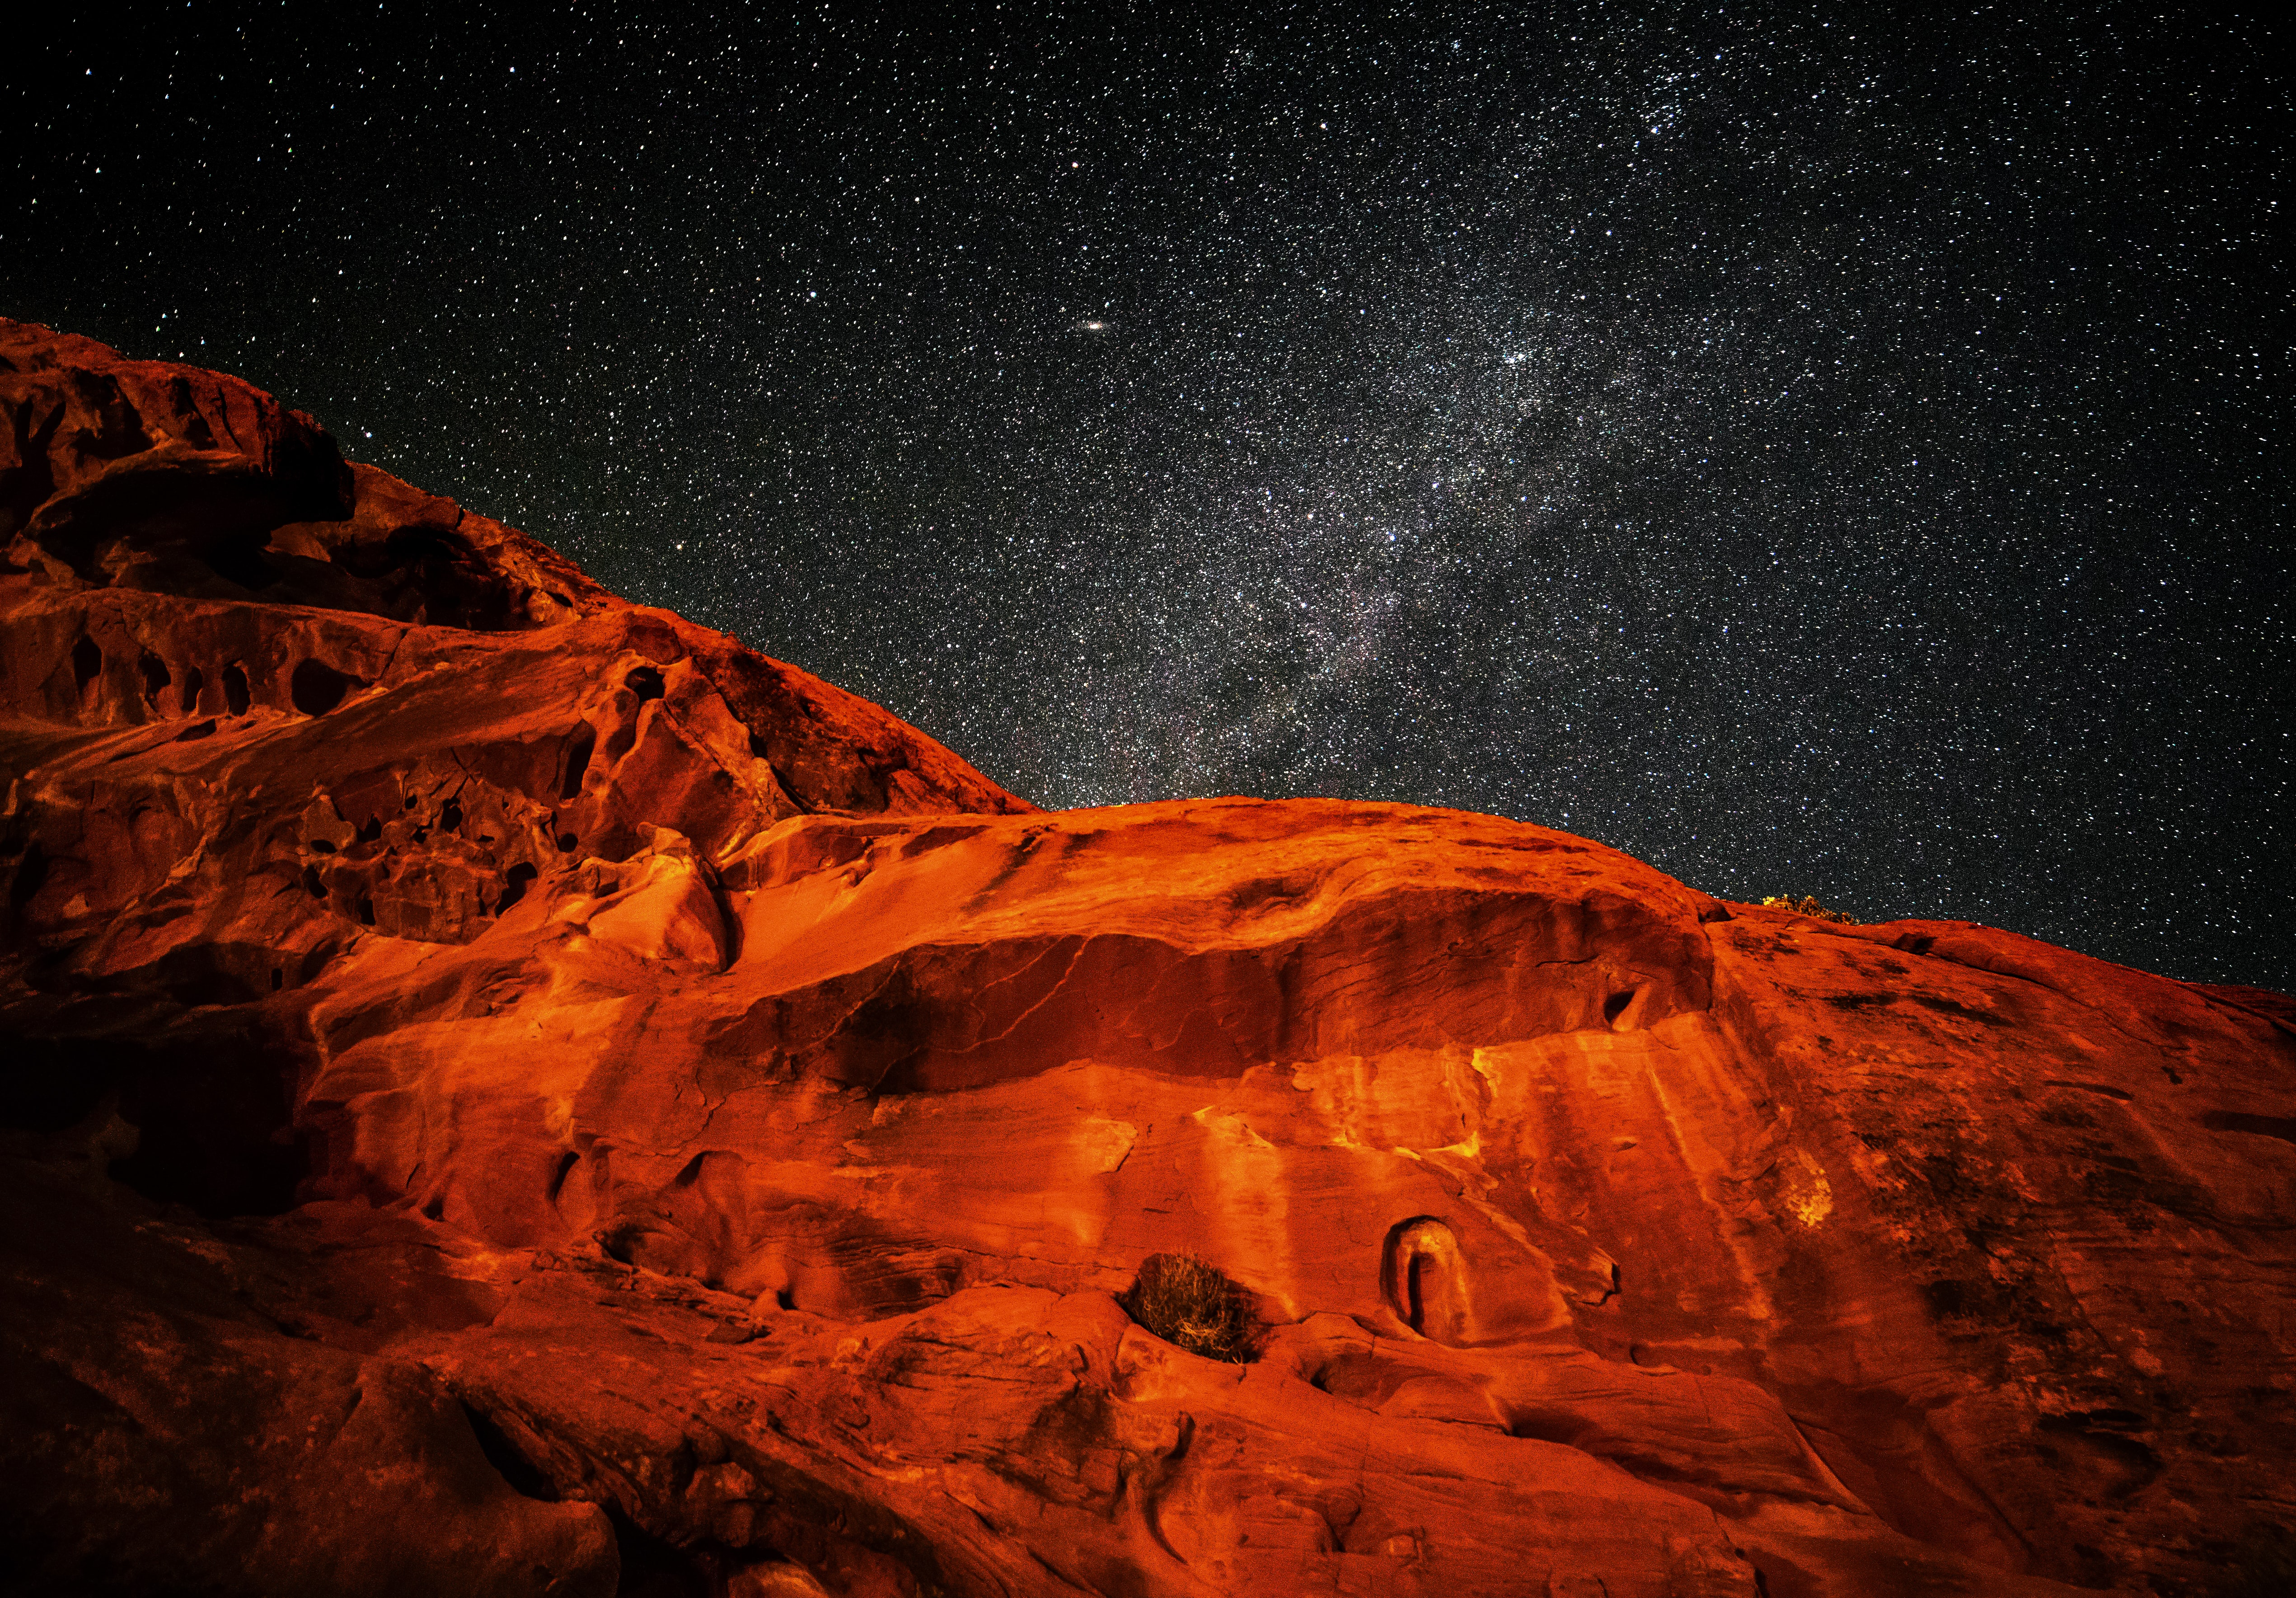 A glowing red mountain under a starry sky